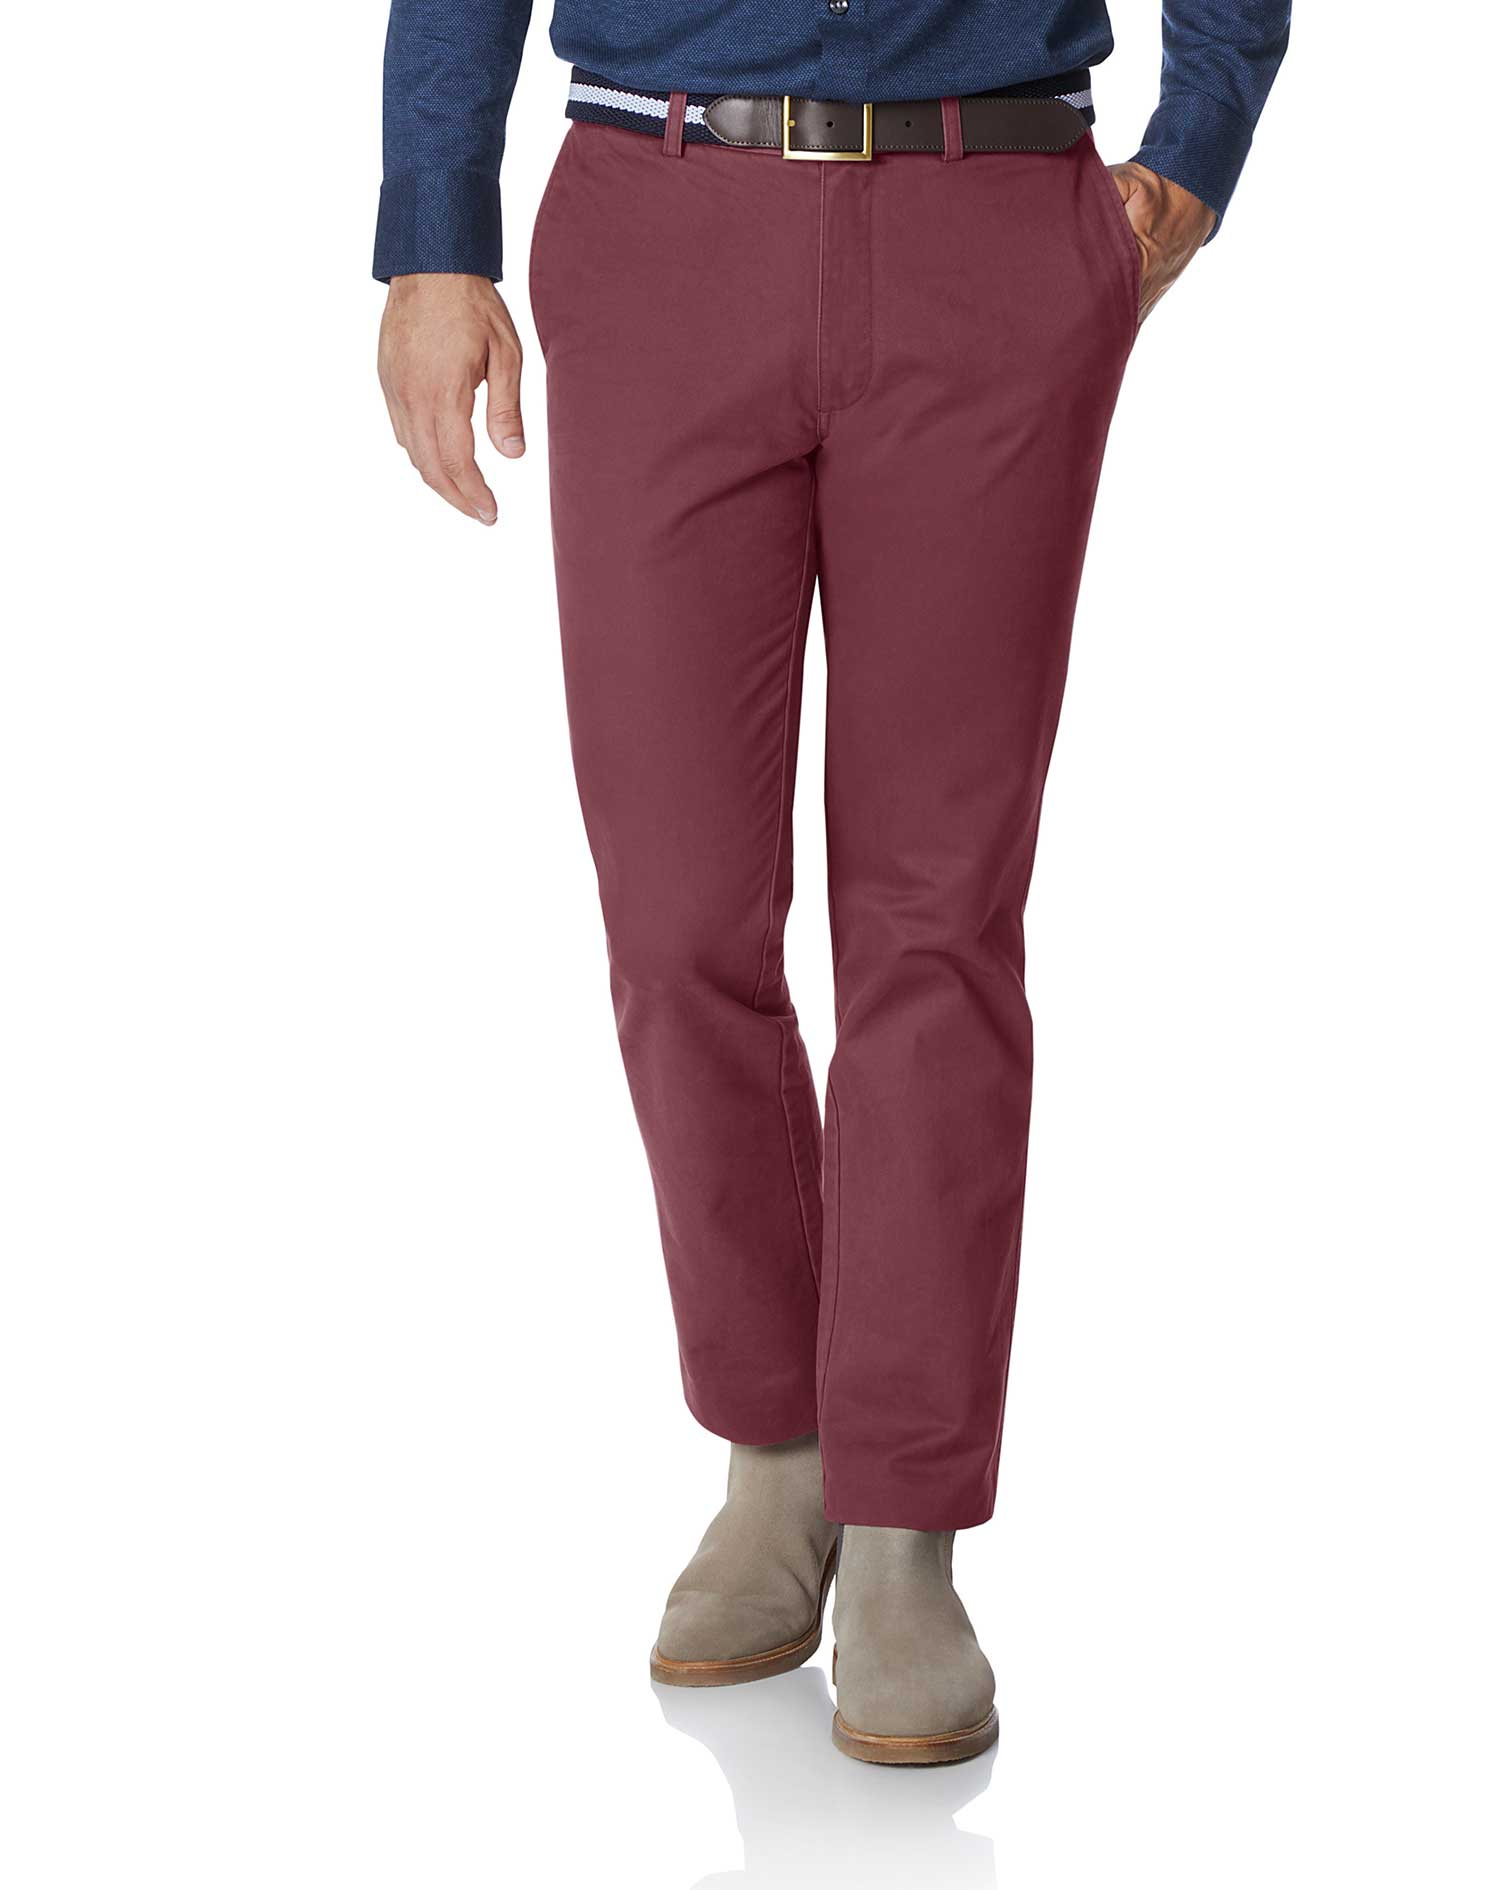 Dark Pink Classic Fit Flat Front Washed Cotton Chino Trousers Size W42 L38 by Charles Tyrwhitt